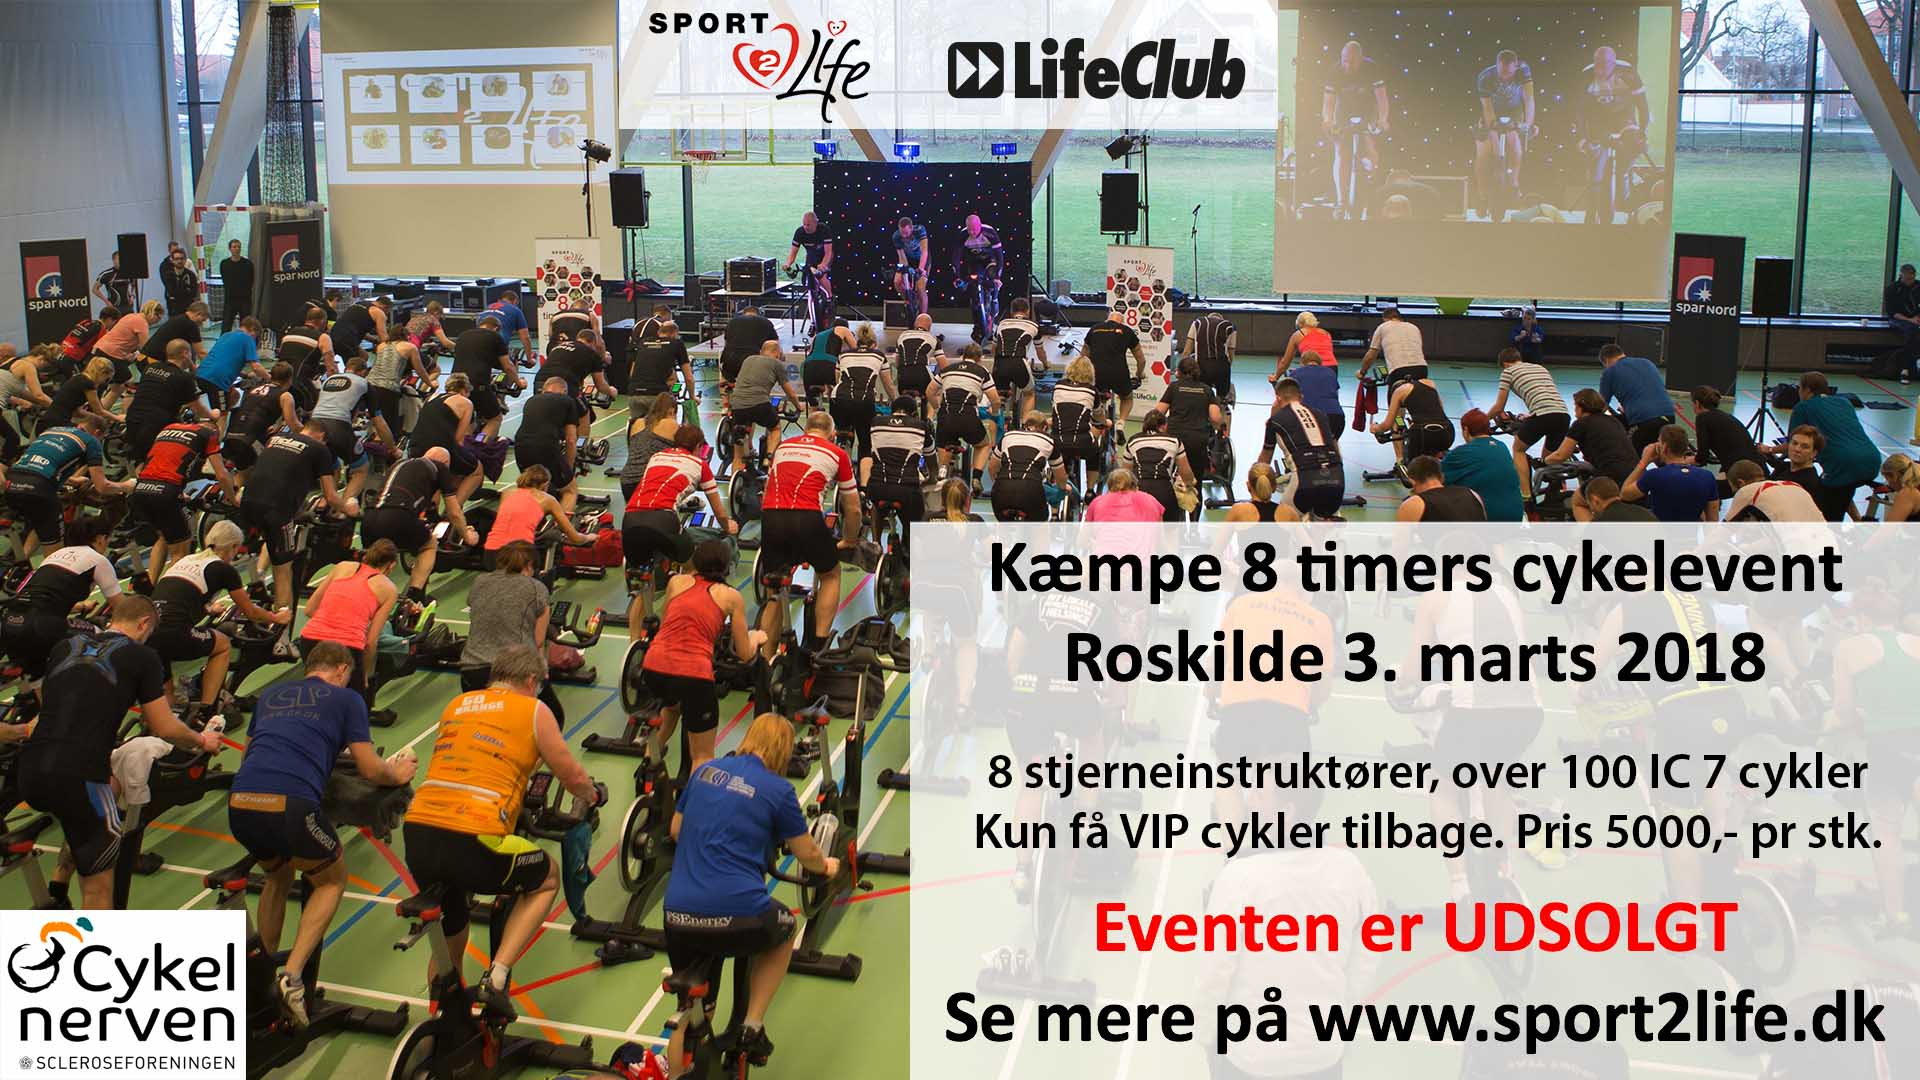 Sport2Life cykelevent